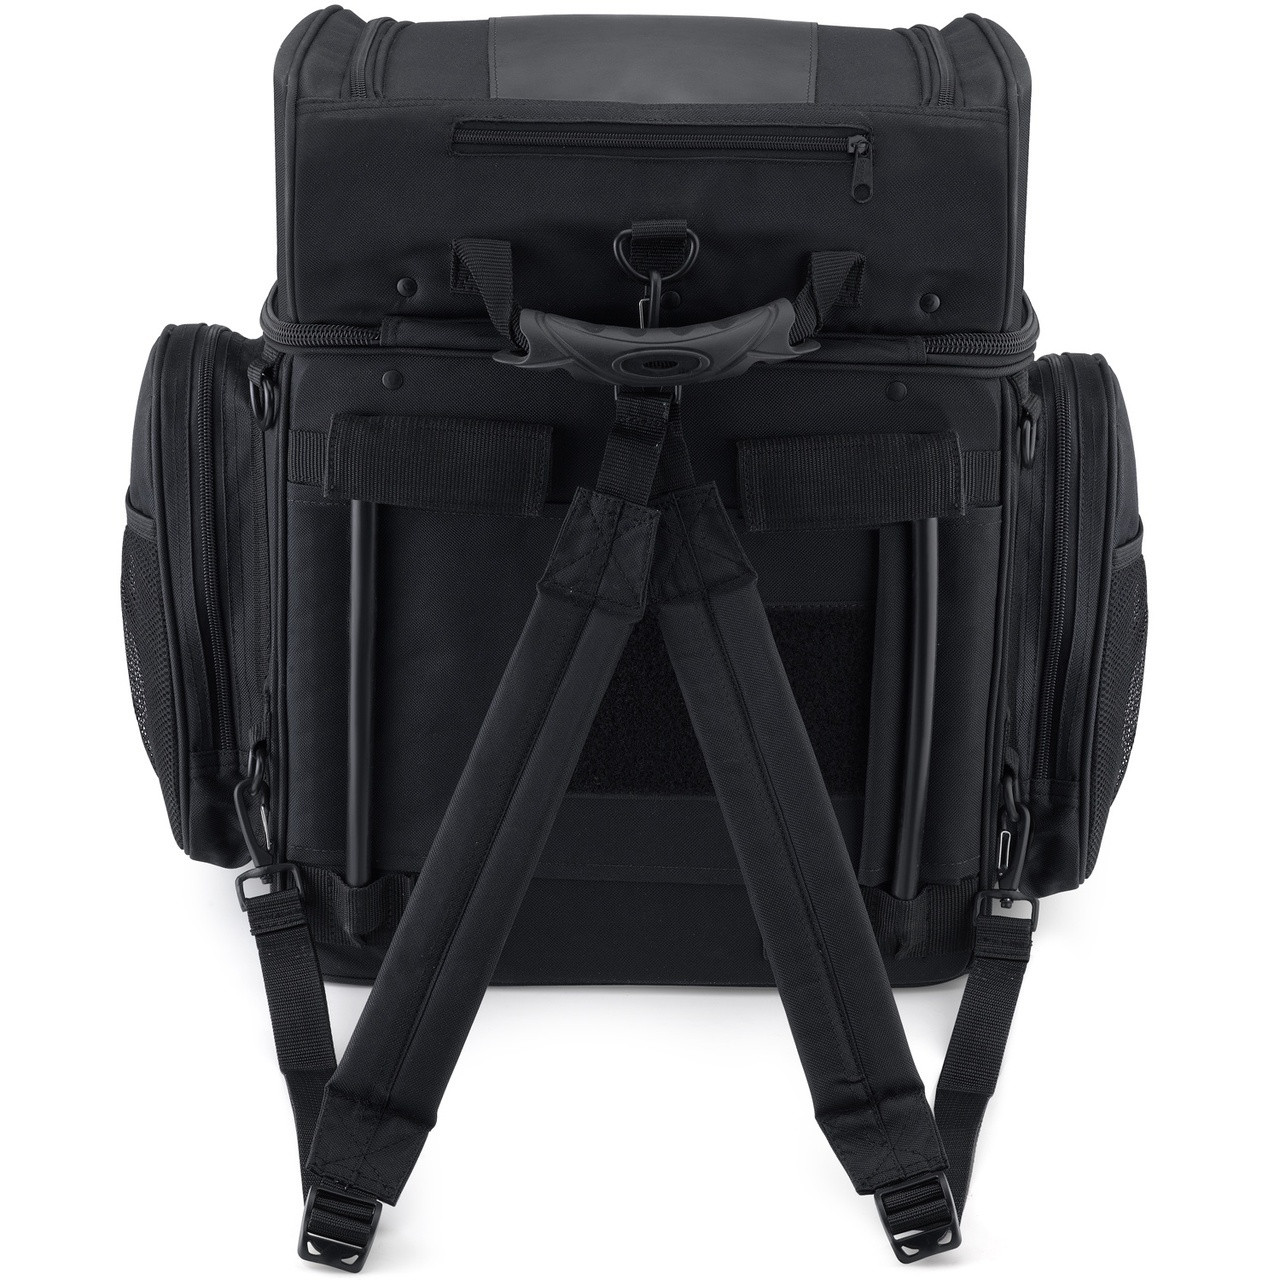 Large Back Motorcycle Seat Luggage (4080 cubic inches)  Back View